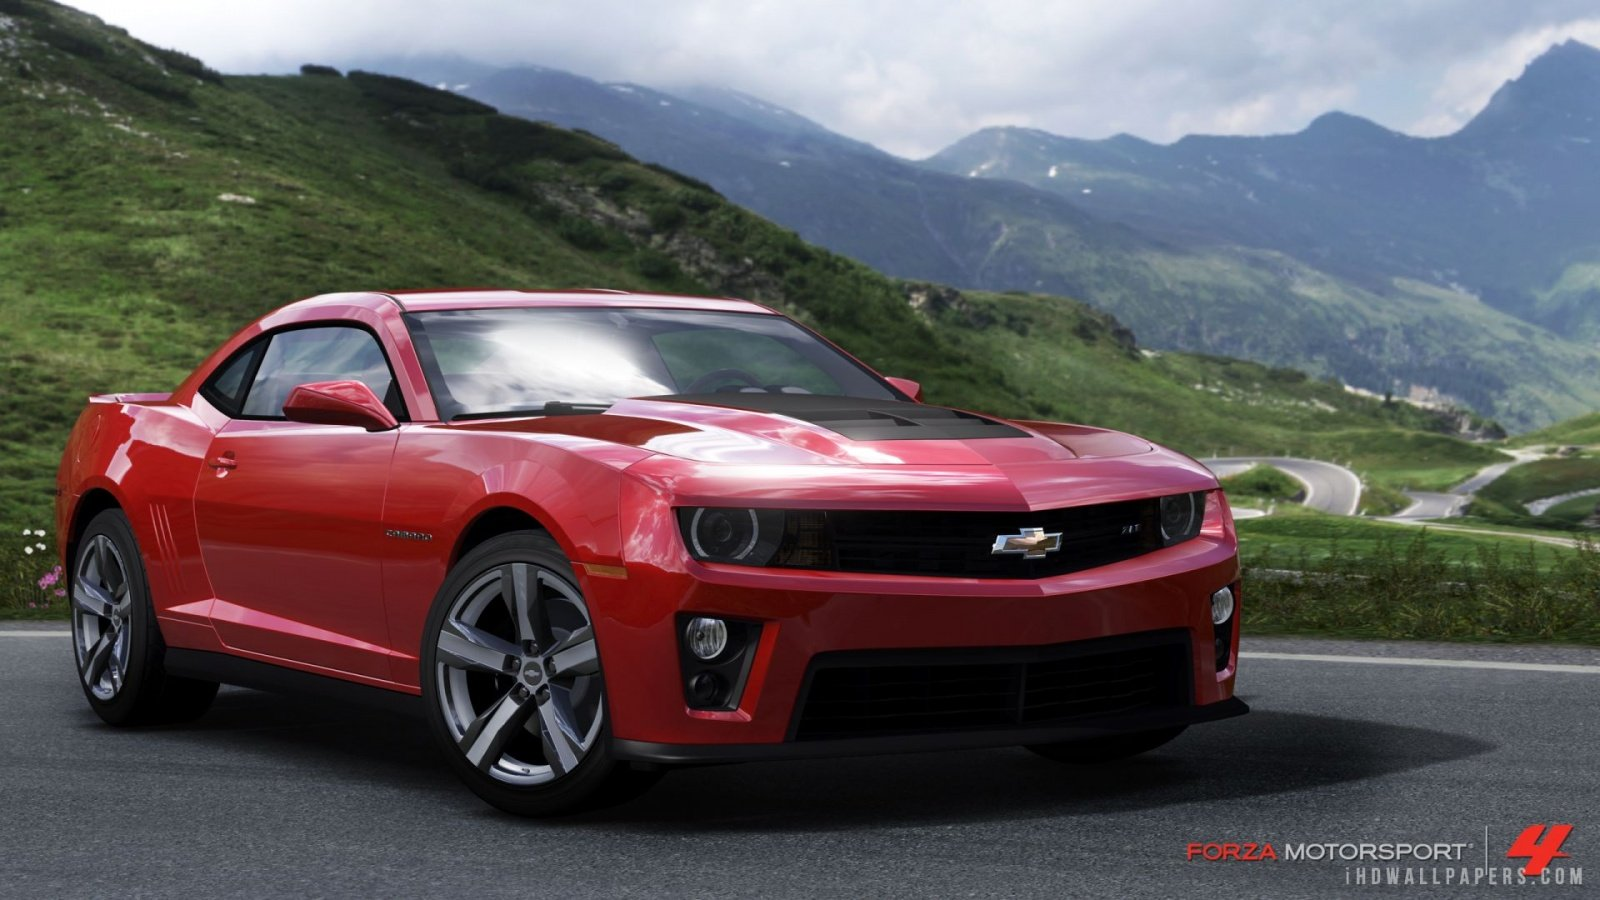 Chevrolet Camaro ZL1 in Forza Horizon HD Wallpaper   iHD Wallpapers 1600x900